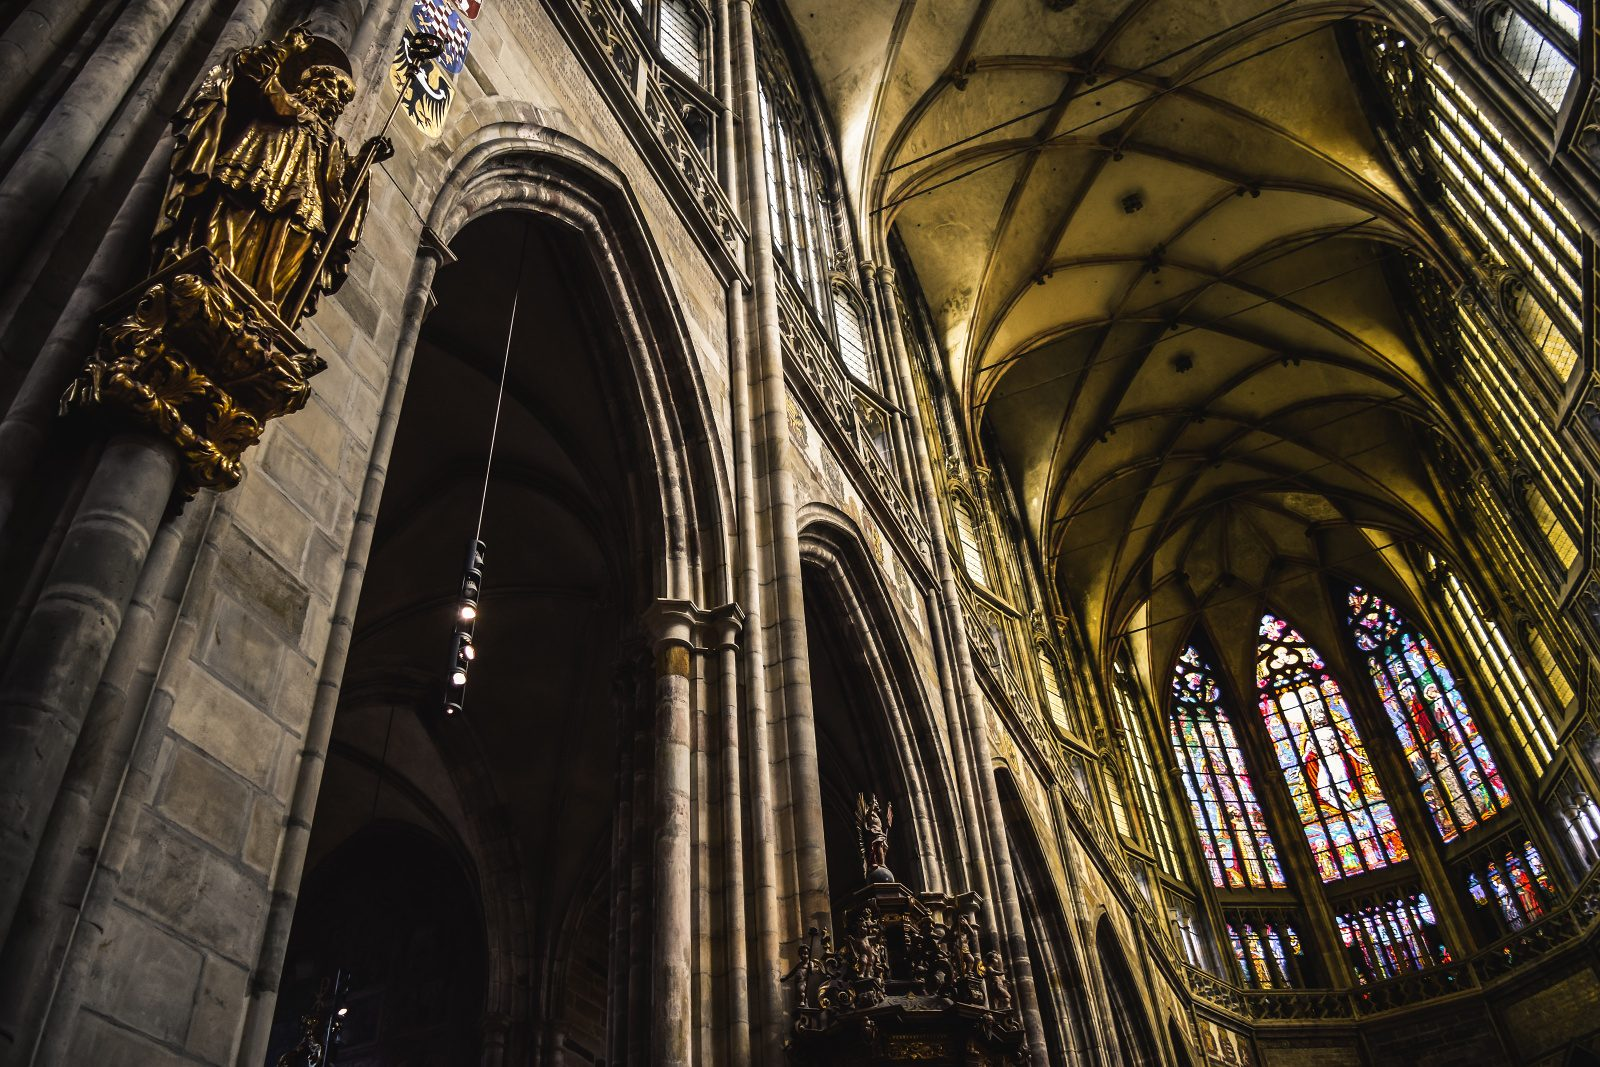 A view of the inside of the Saint Vitus Cathedral